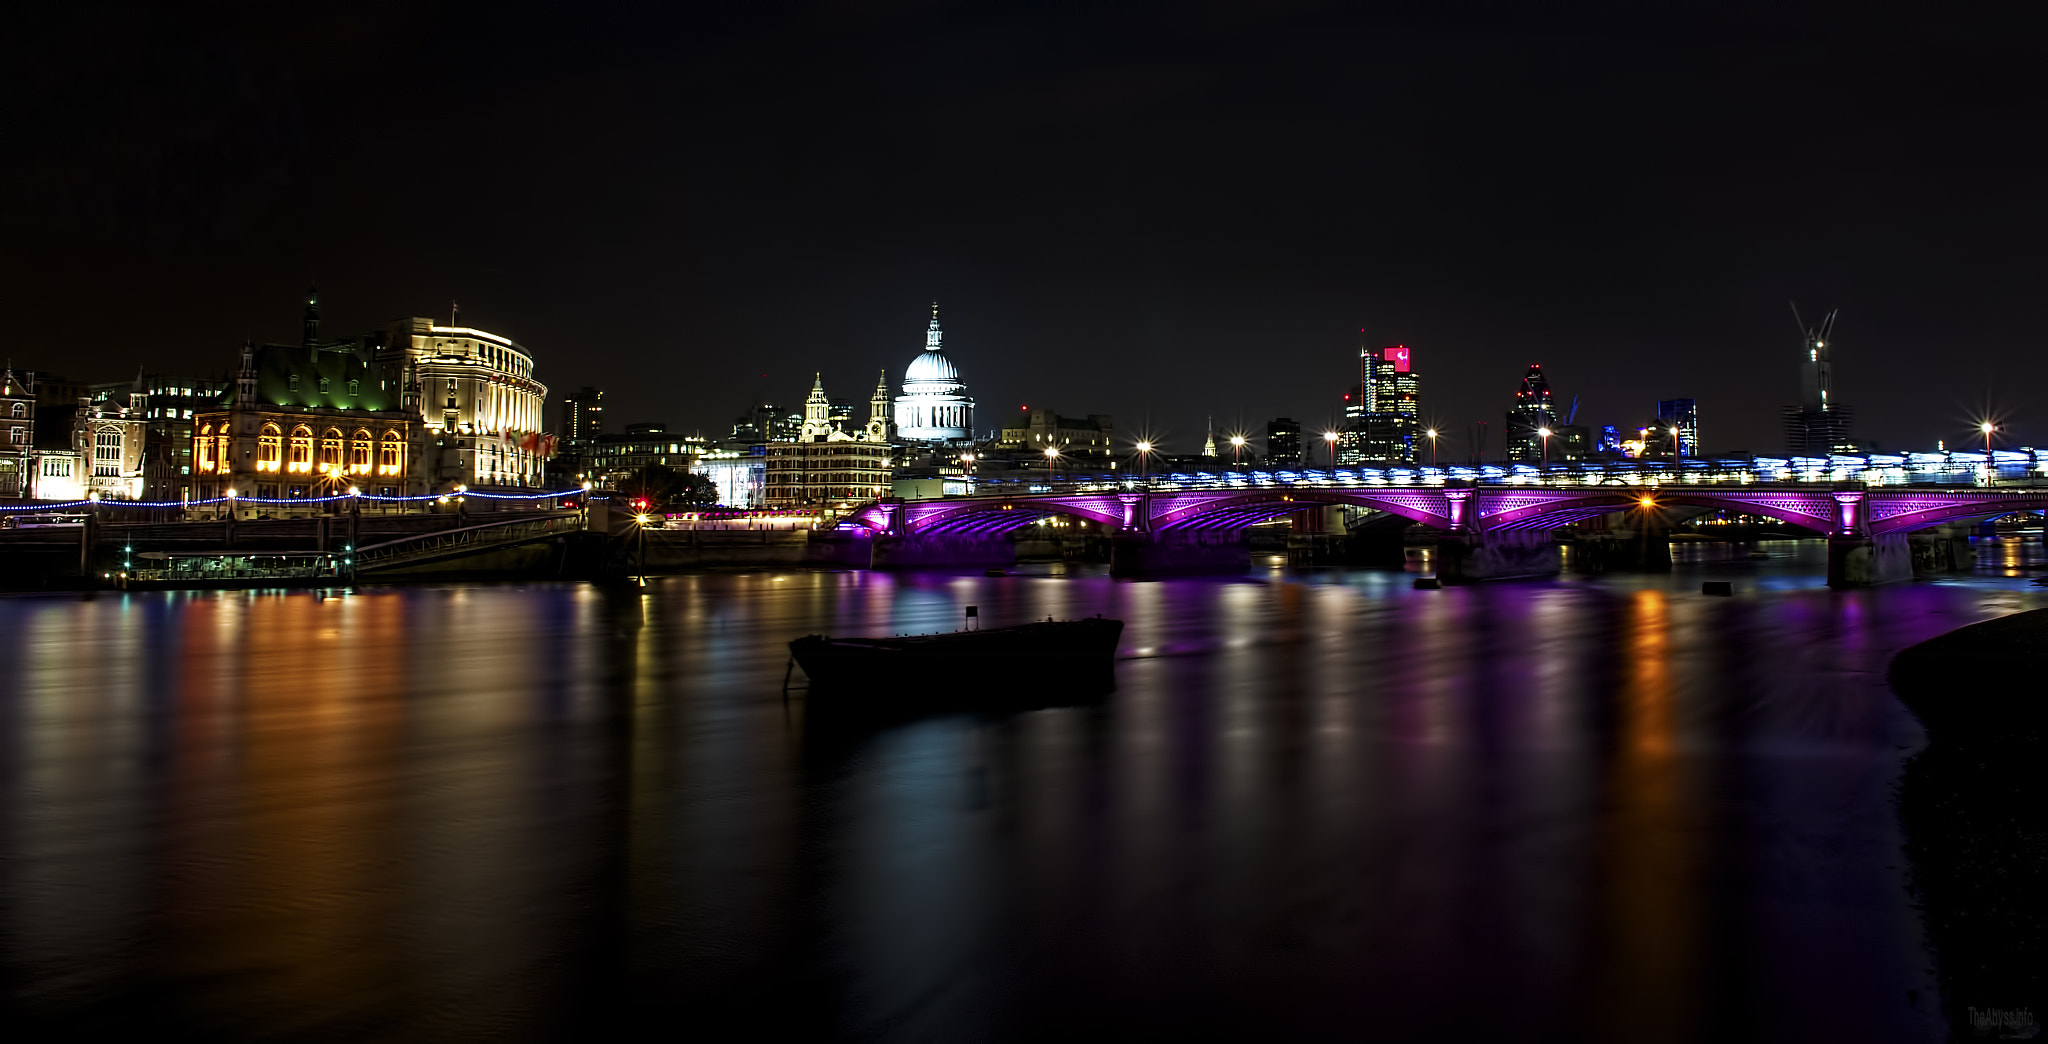 Photograph London Thames 01 by graphite .website on 500px